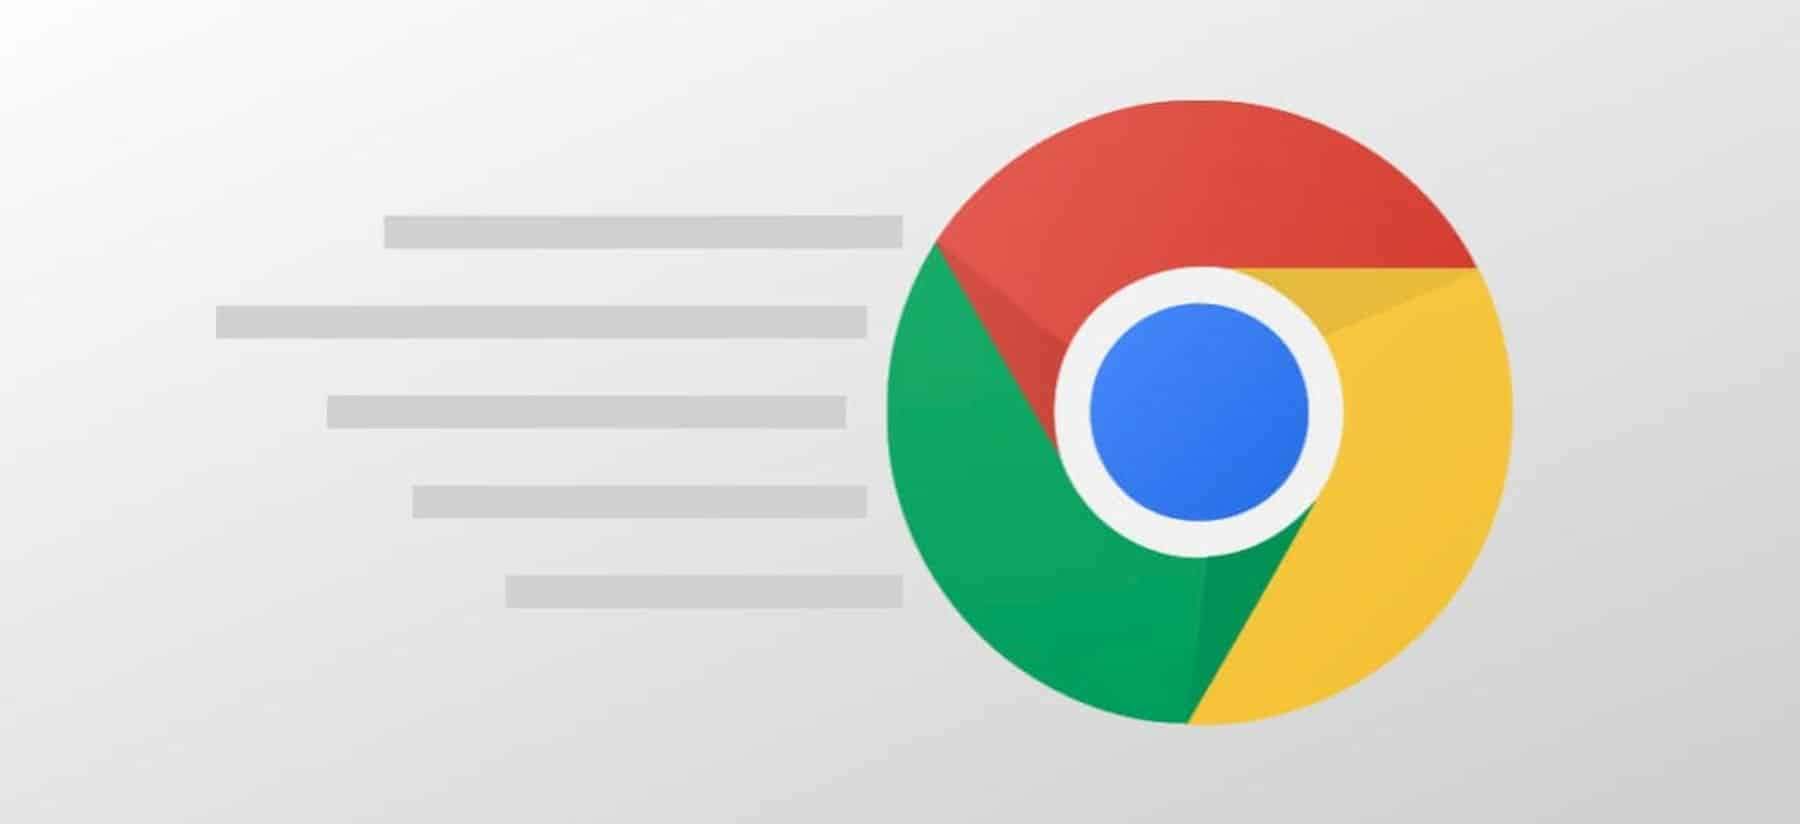 Google Chrome integrates web vitals HUD that offers real-time web page performance